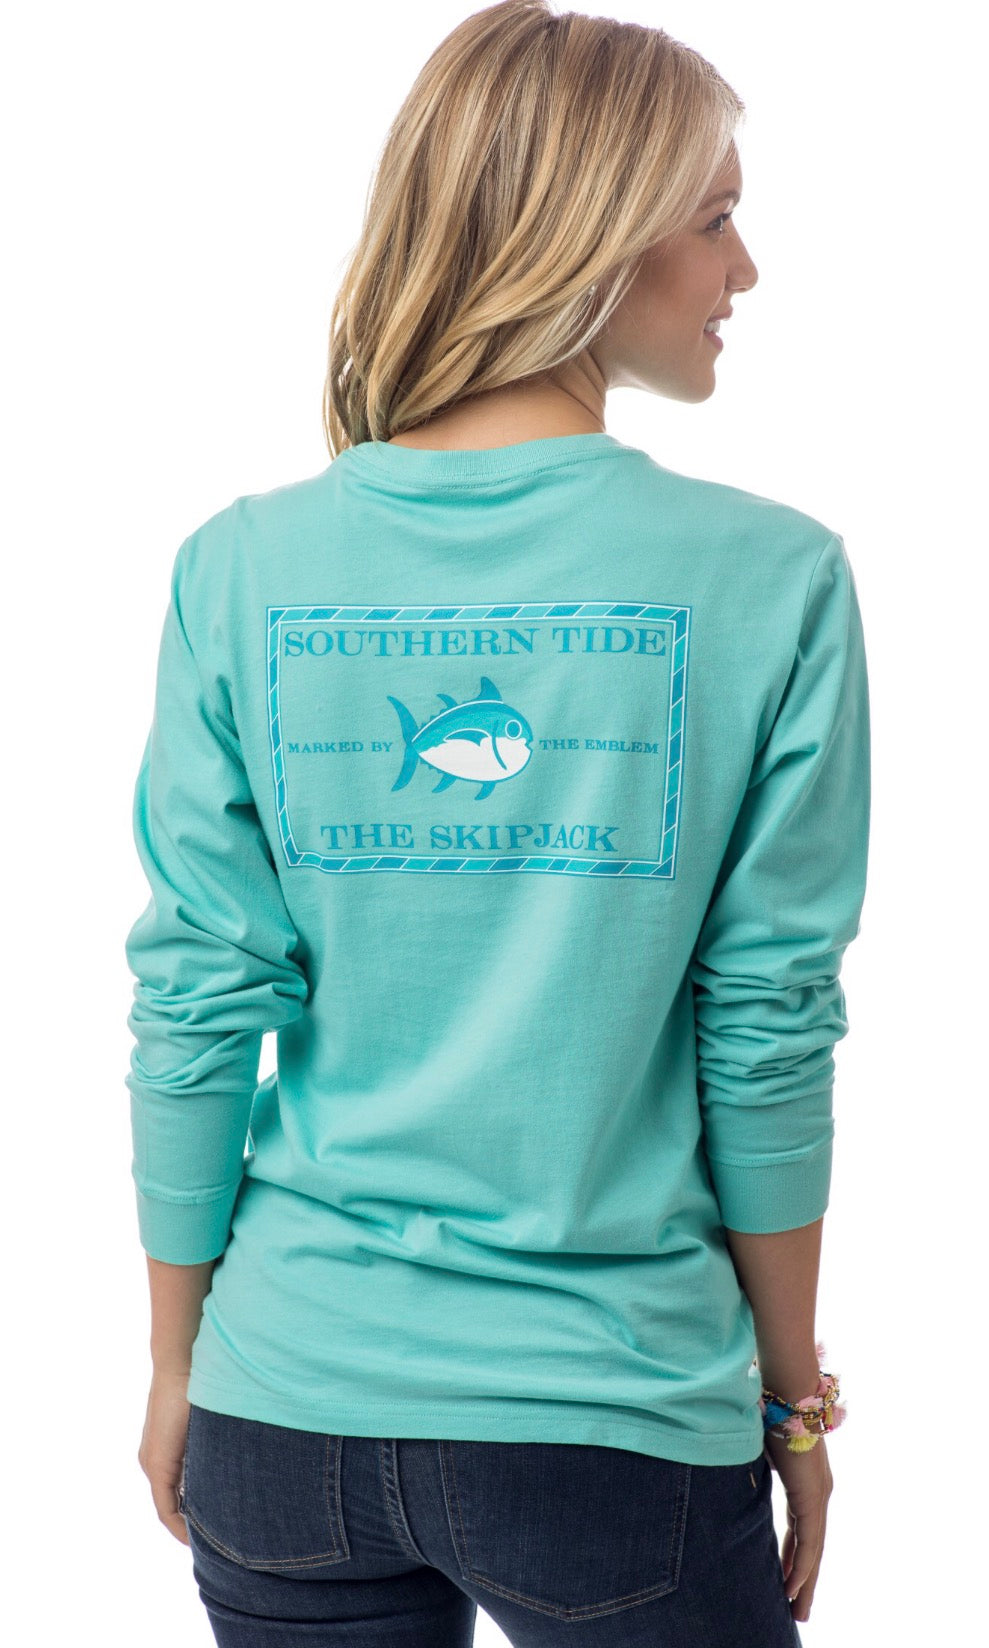 Southern Tide Original Skipjack Pocket Tee